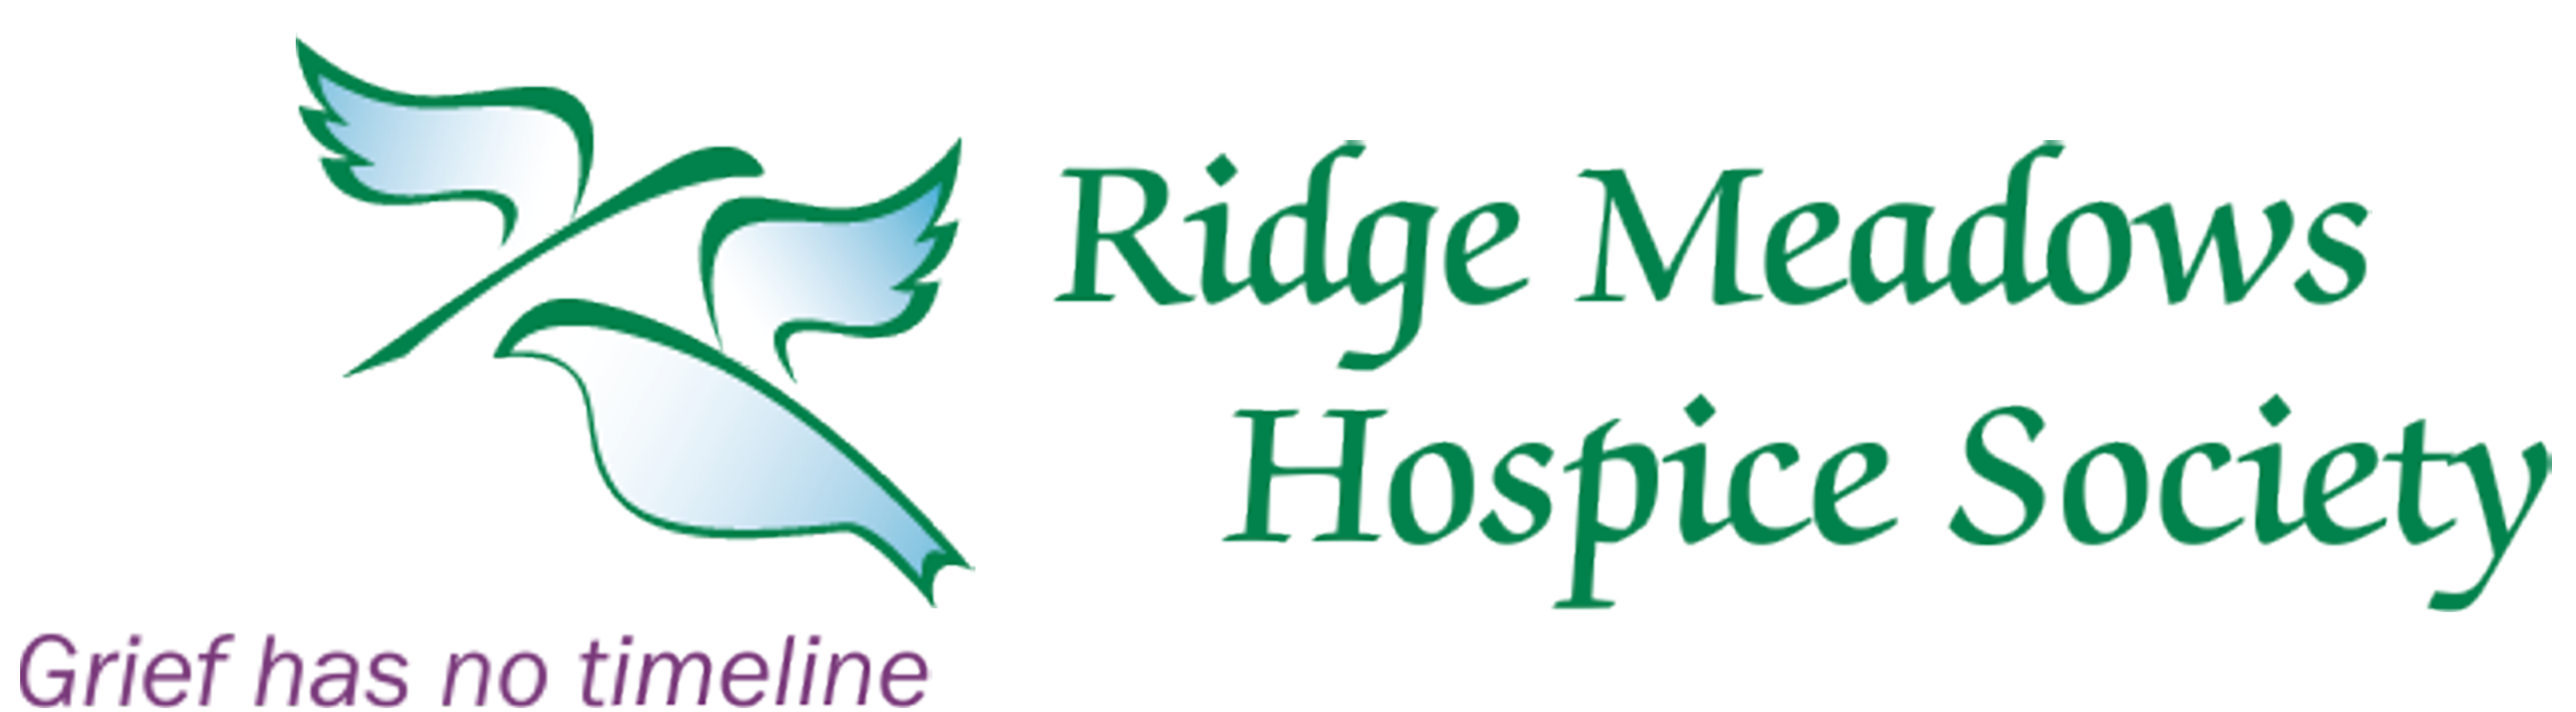 Ridge Meadows Hospice Society Logo grief has no timeline